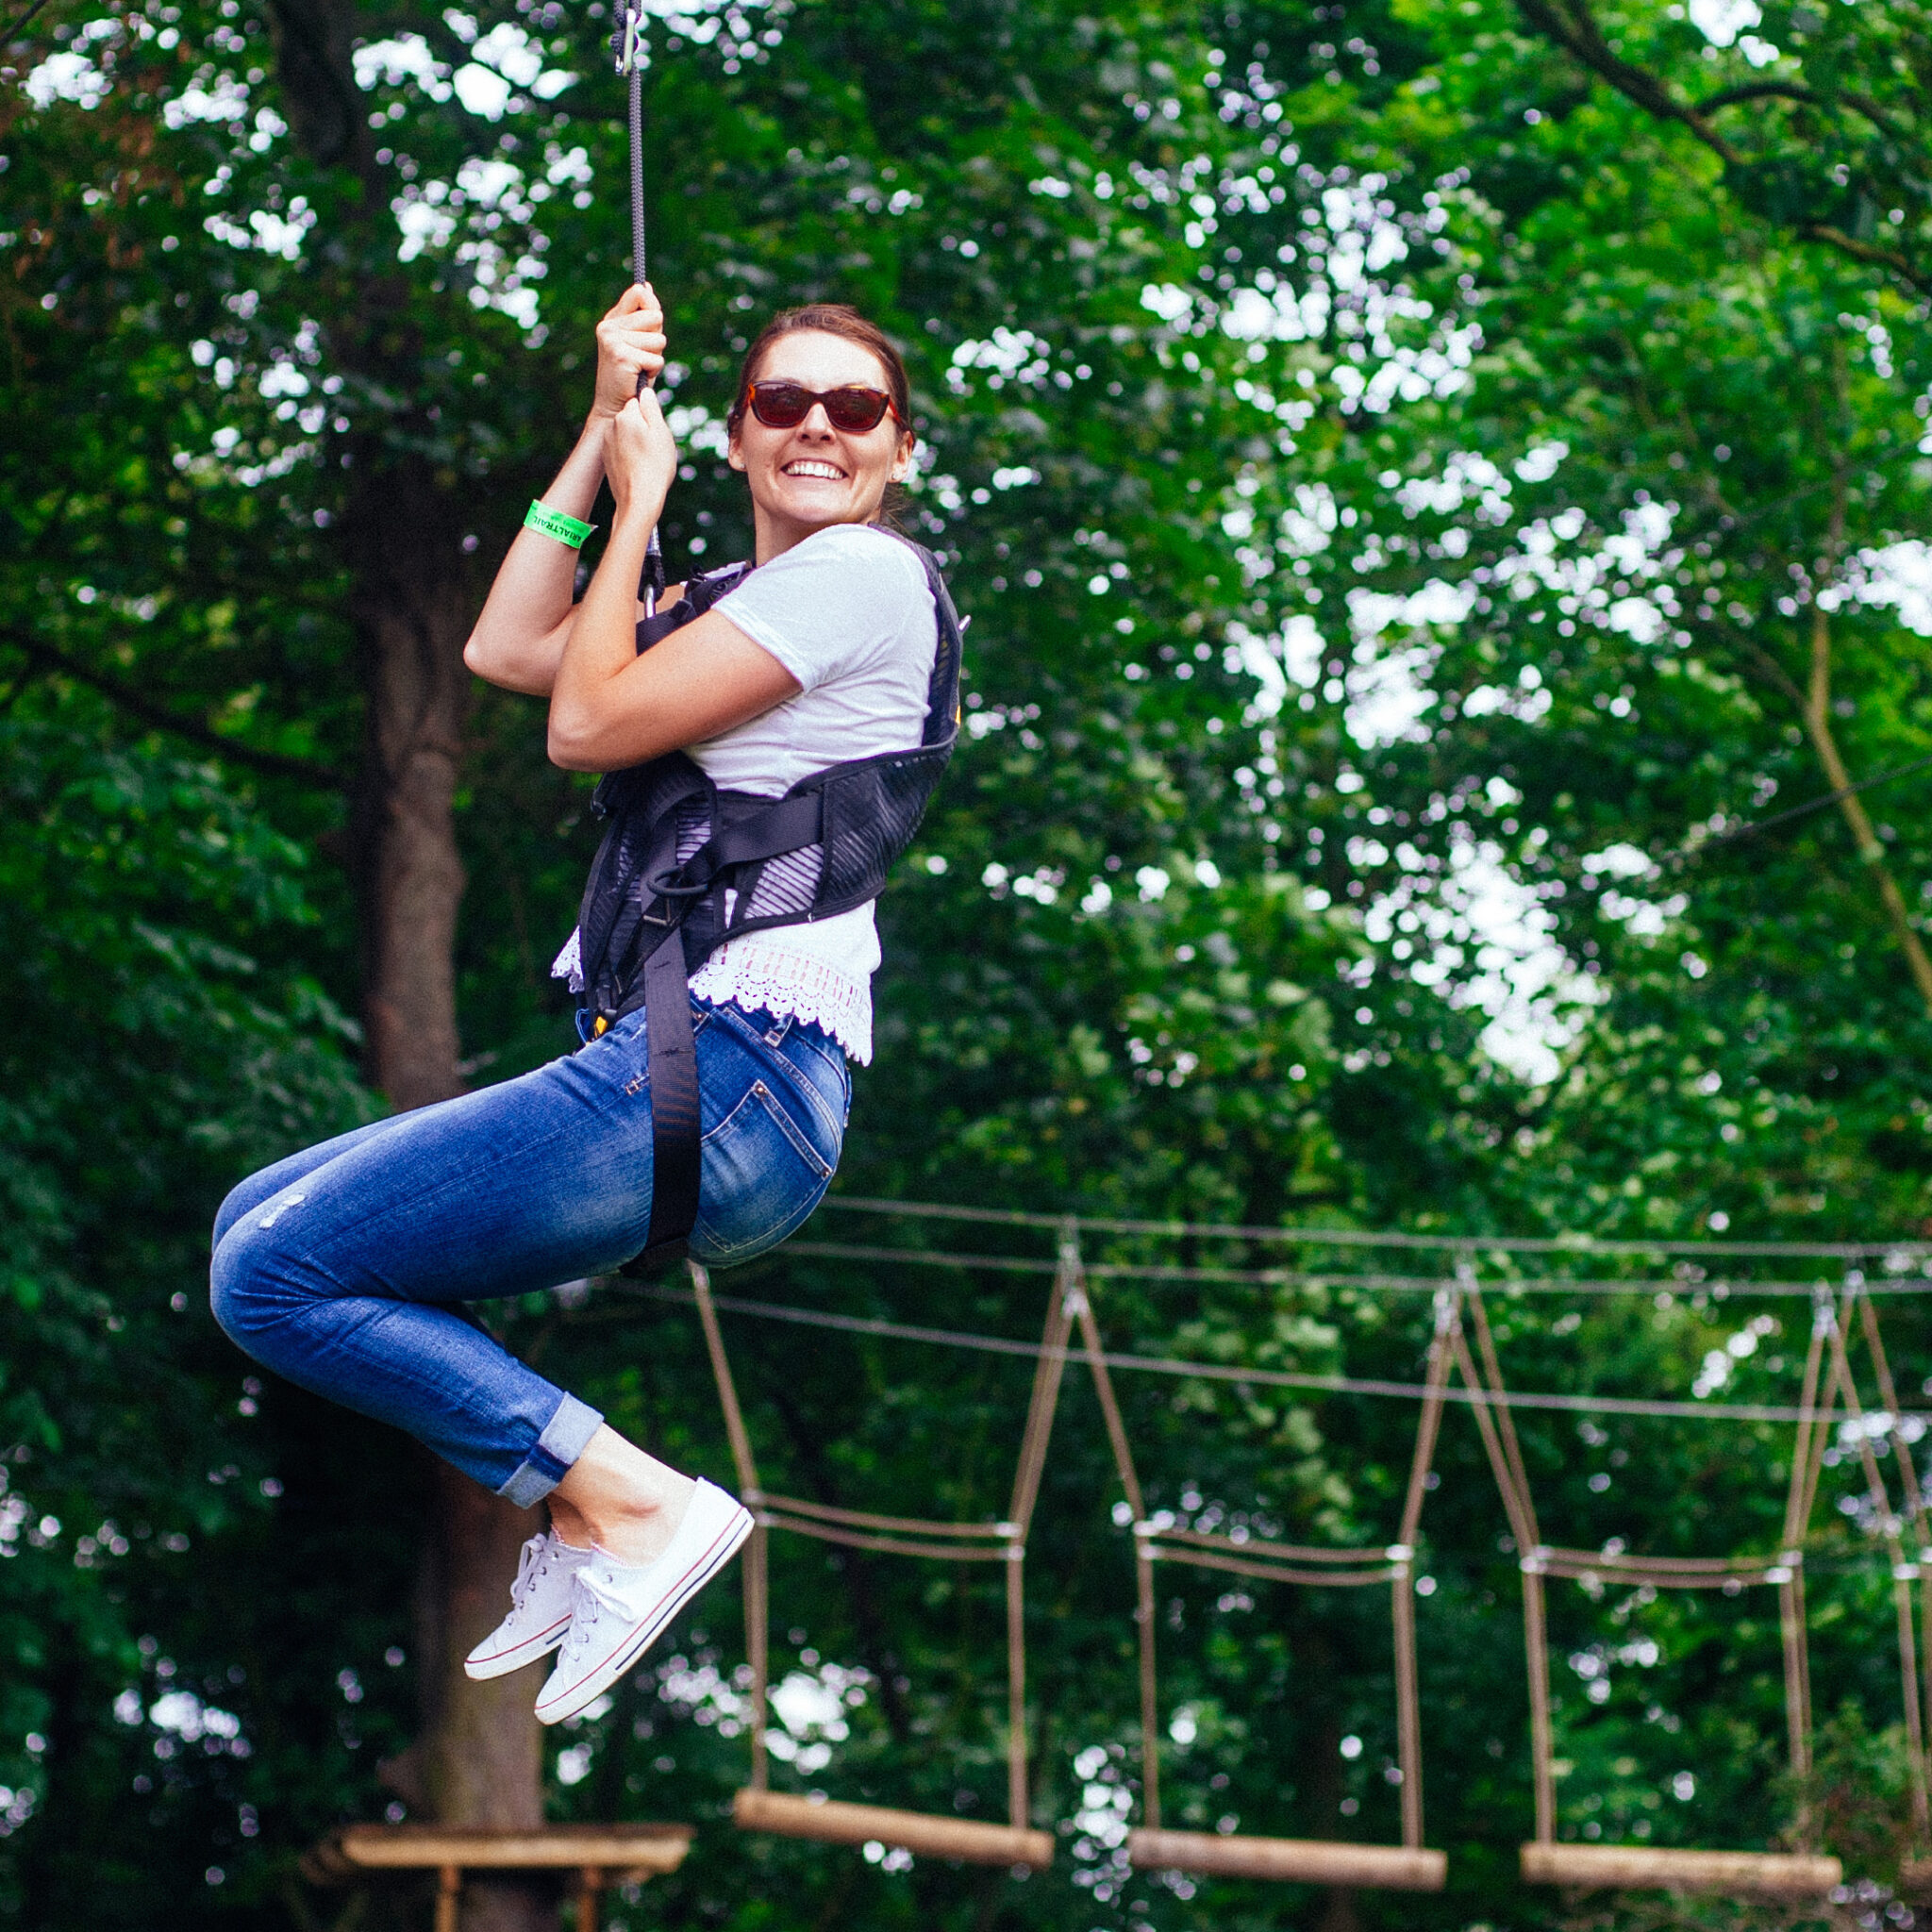 High_Ropes_16_highres-5149